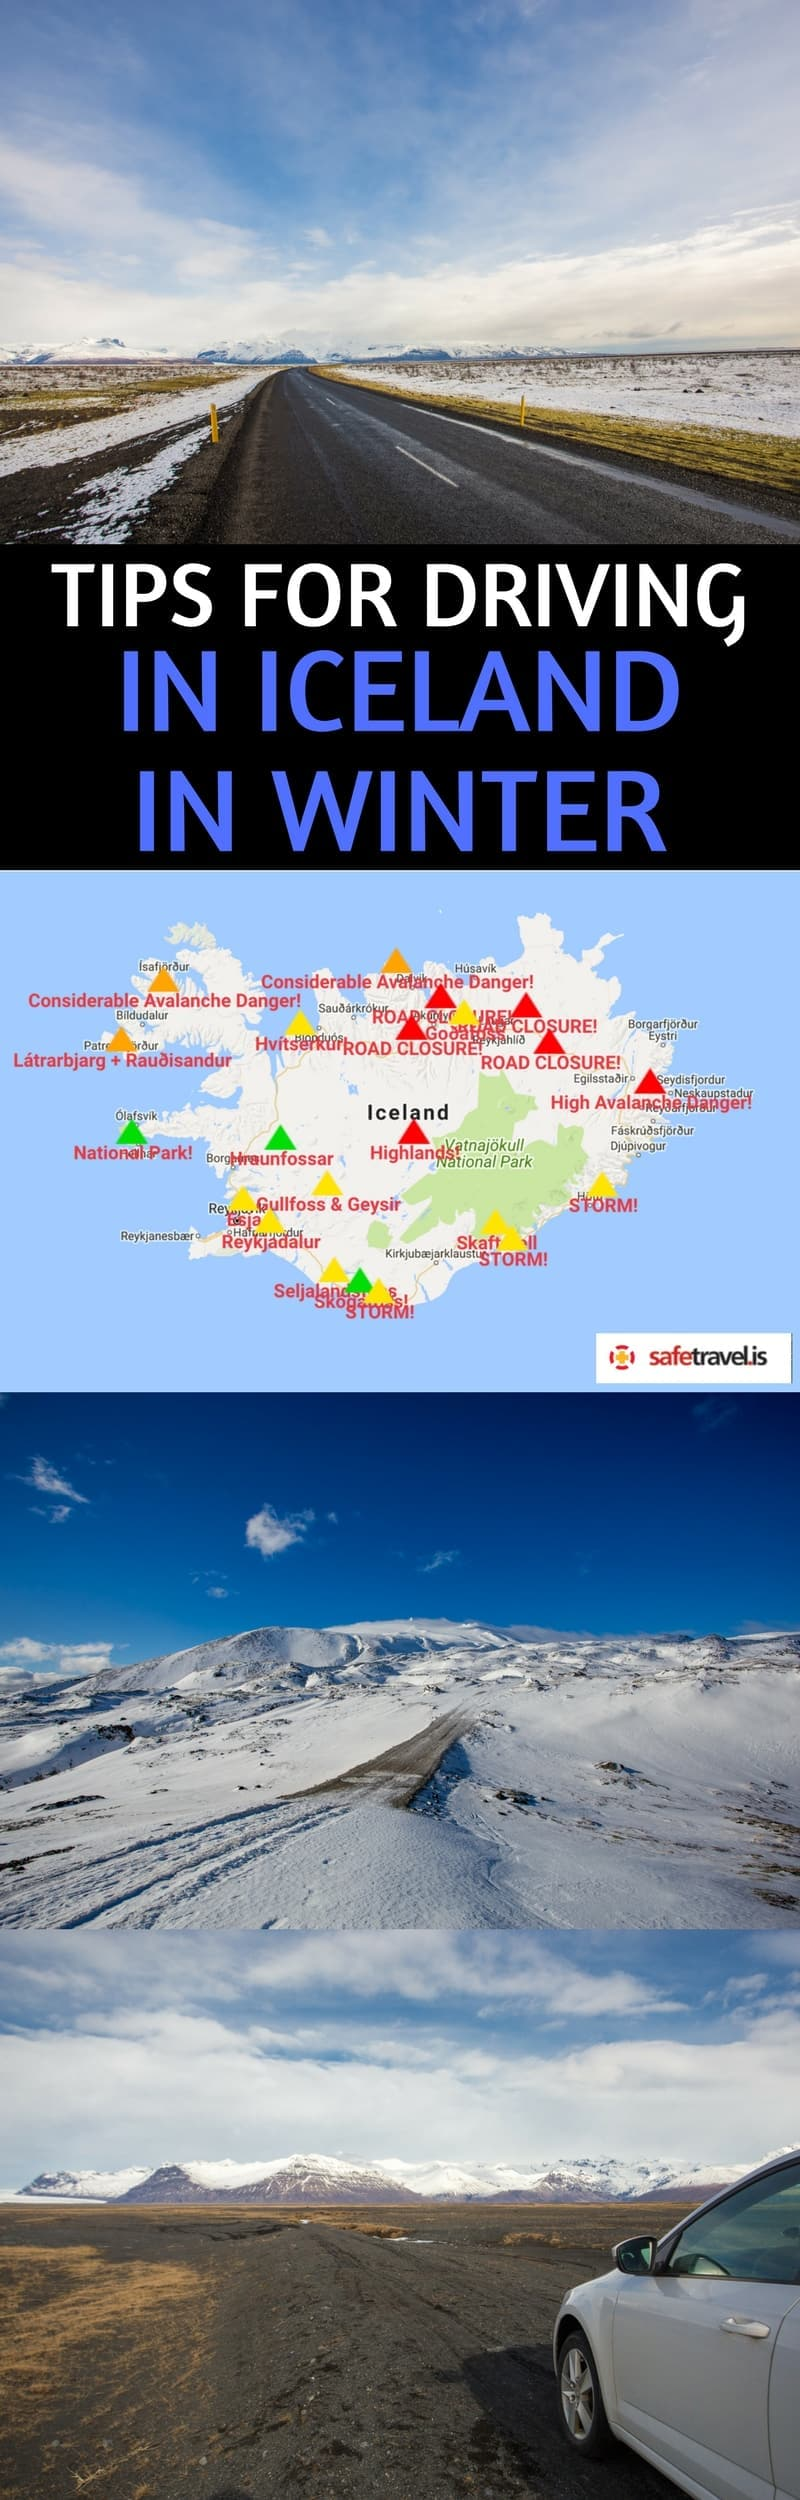 A practical & helpful guide to driving in Iceland in winter. We cover everything you need to know to be prepared for driving in Iceland during the winter.We'll tell you what road conditions are like in Iceland in winter, what kind of car to rent, the best areas of Iceland to visit (and avoid) in the winter, how to prepare for a winter Iceland road trip, and how to stay safe. #Icelandtravel #wintertravel #Icelandroadtrip #driving #Icelandinwinter #drivinginwinter